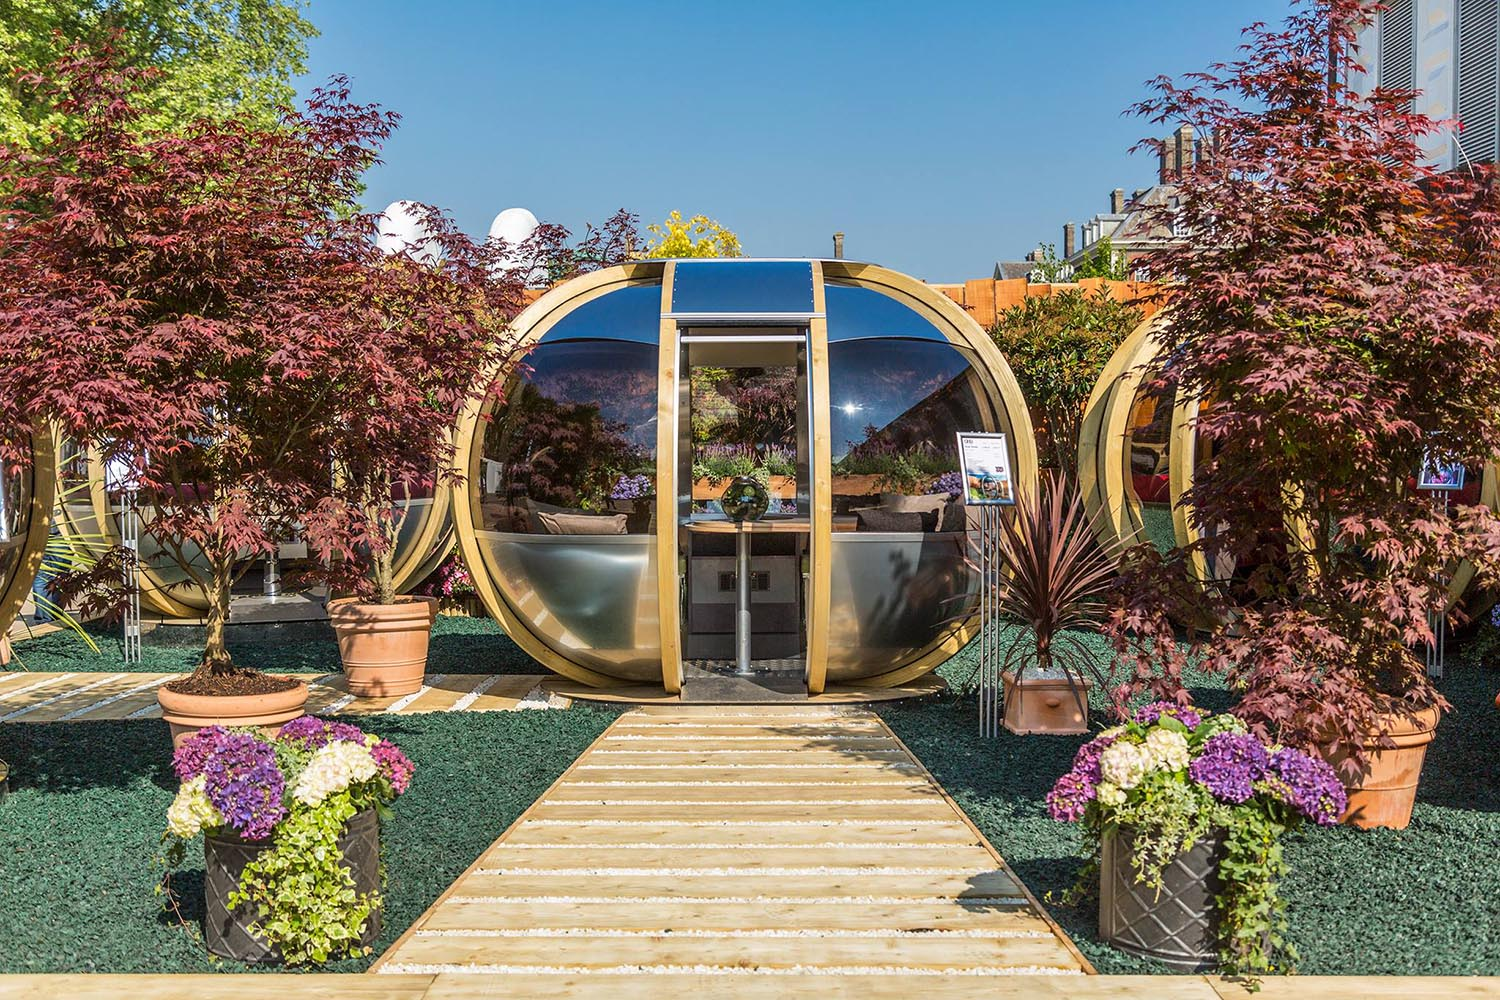 2018 RHS Chelsea Flower Show